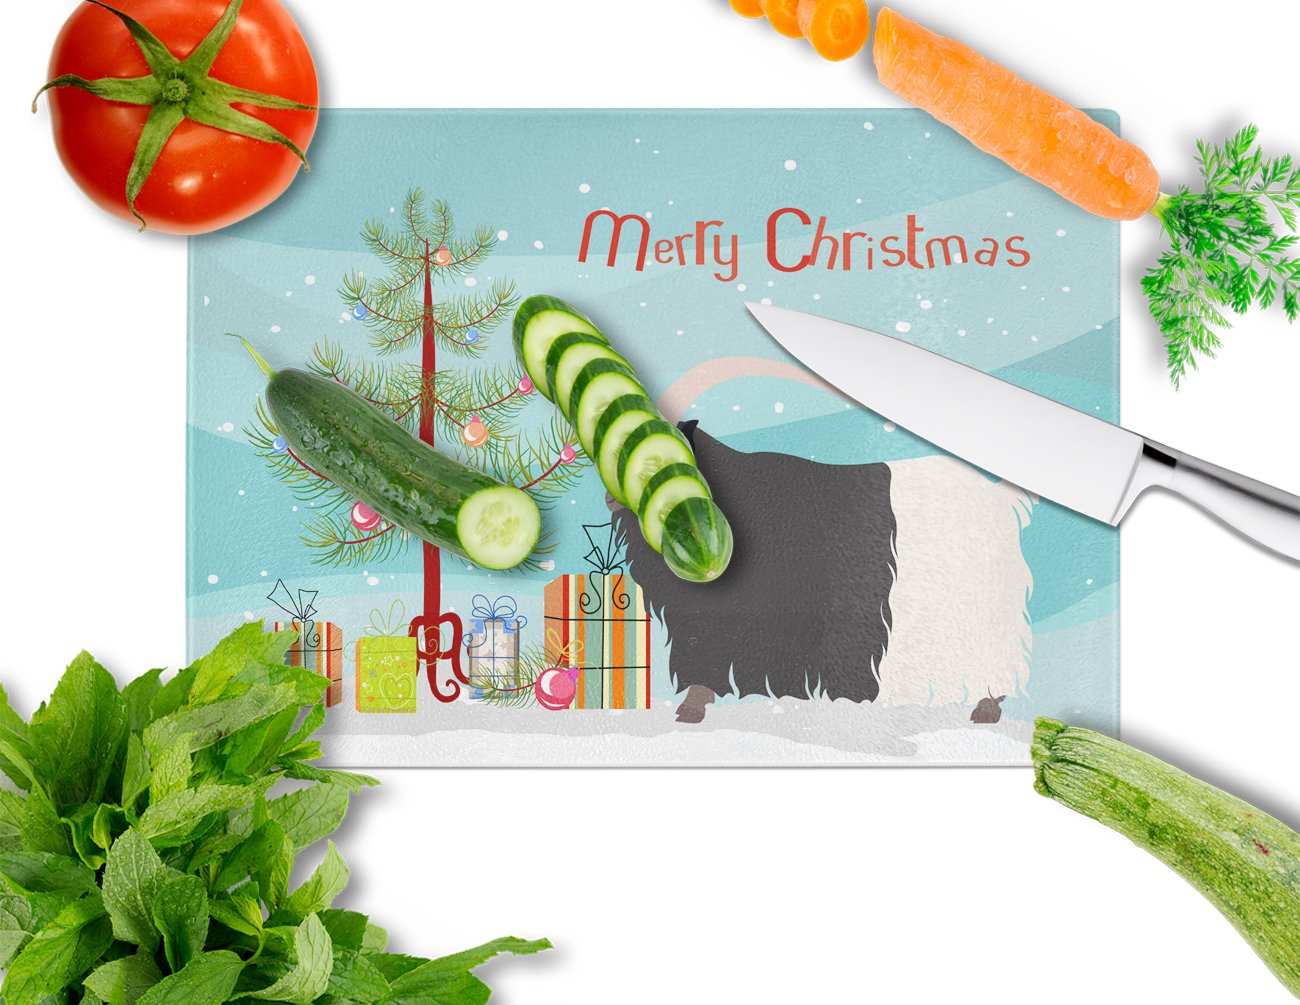 Welsh Black-Necked Goat Christmas Glass Cutting Board Large BB9254LCB by Caroline's Treasures